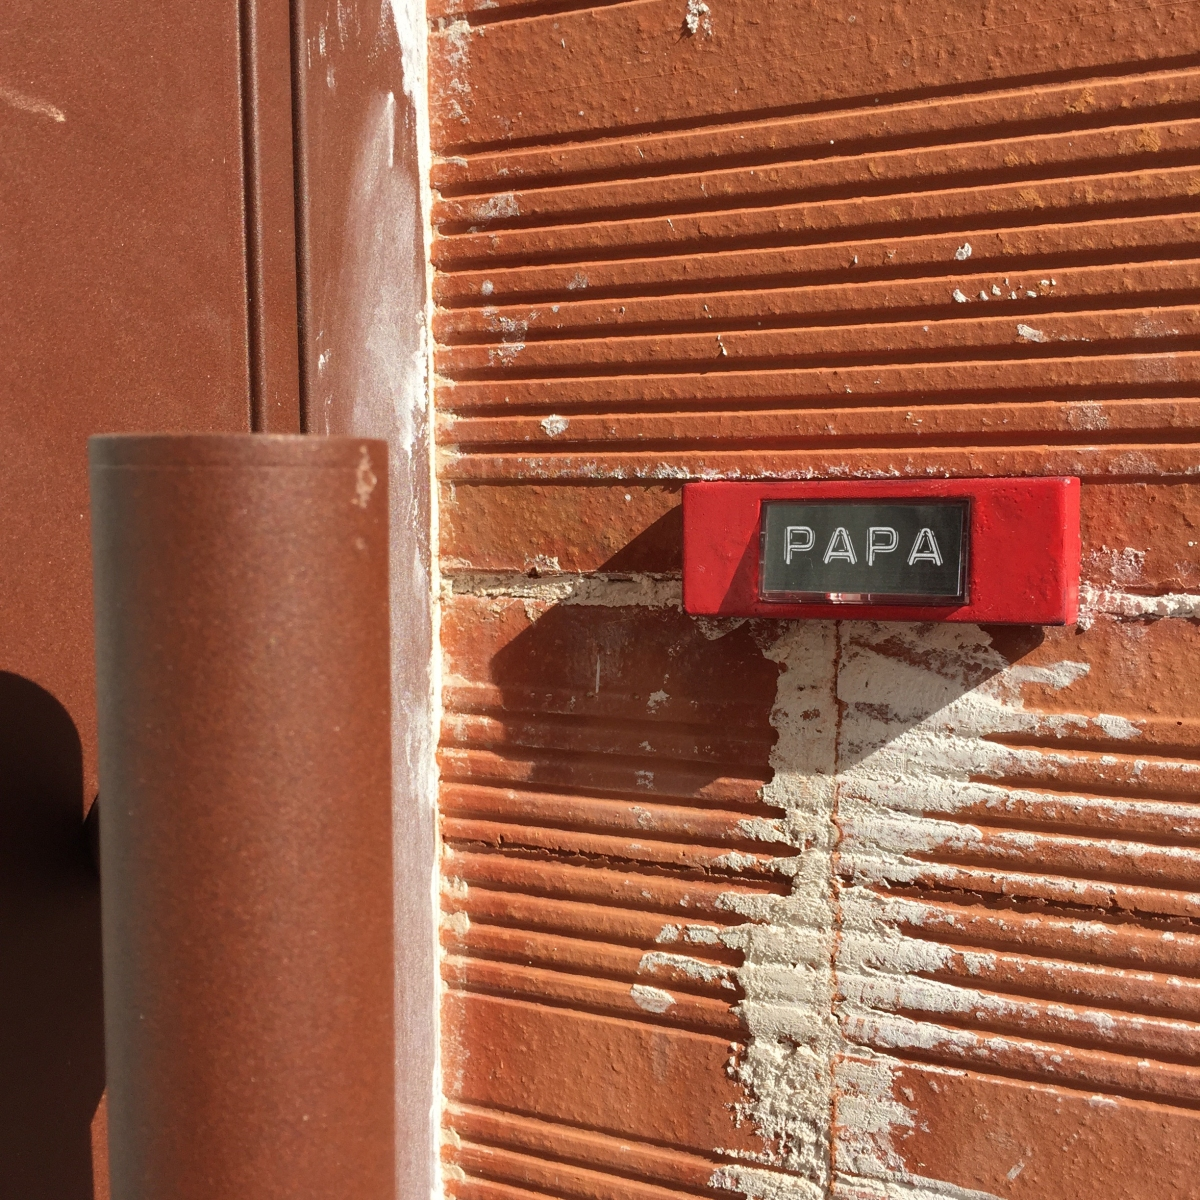 "Father's day ""Papa"" - Paris 19 ème arrondissement - 2015 - Le Sonneur"